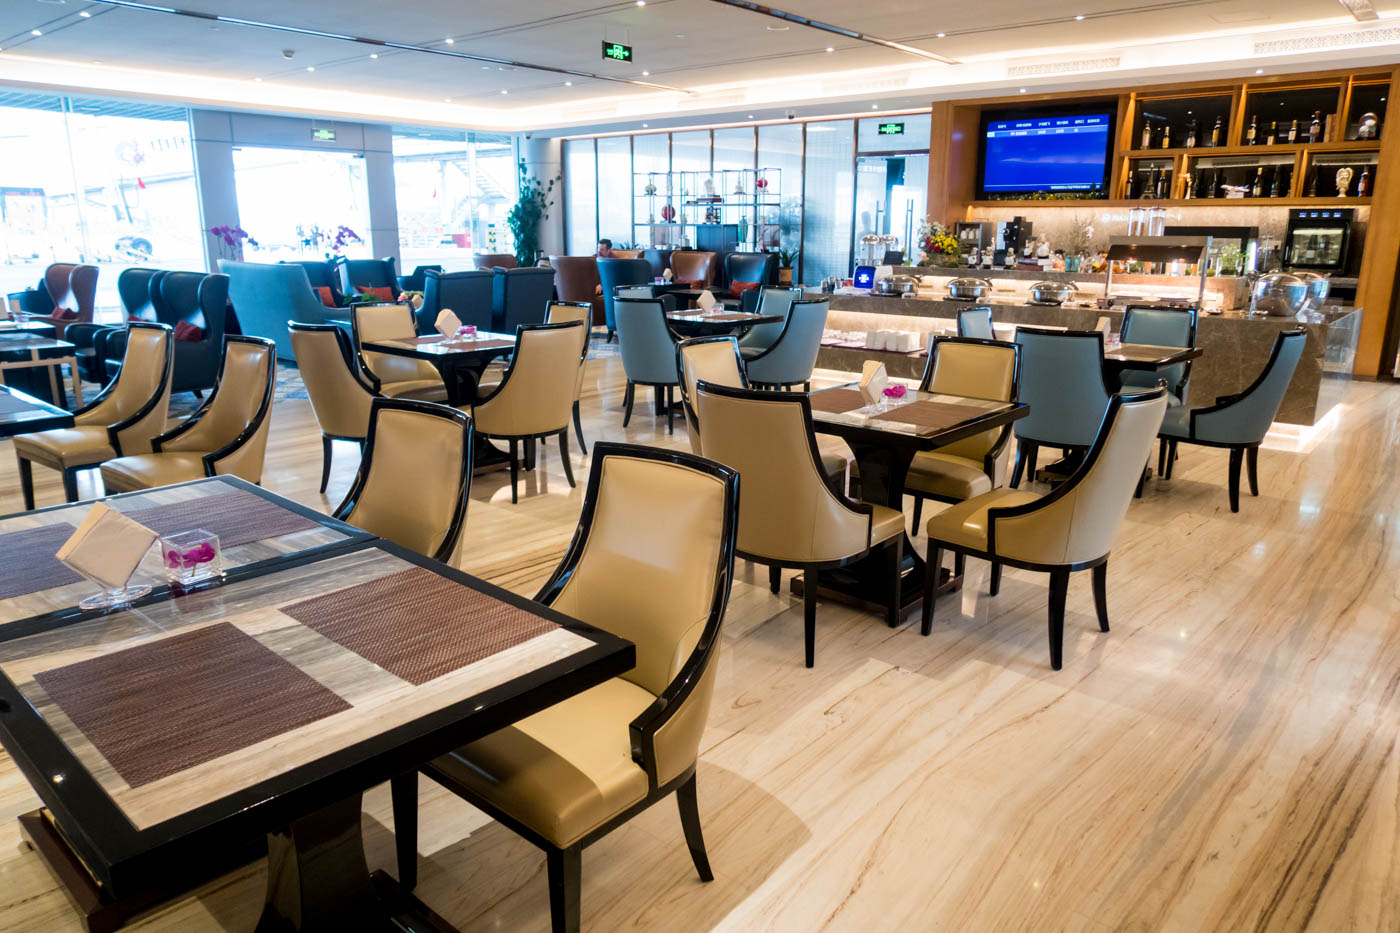 Xiamen Airlines Lounge Seating Area